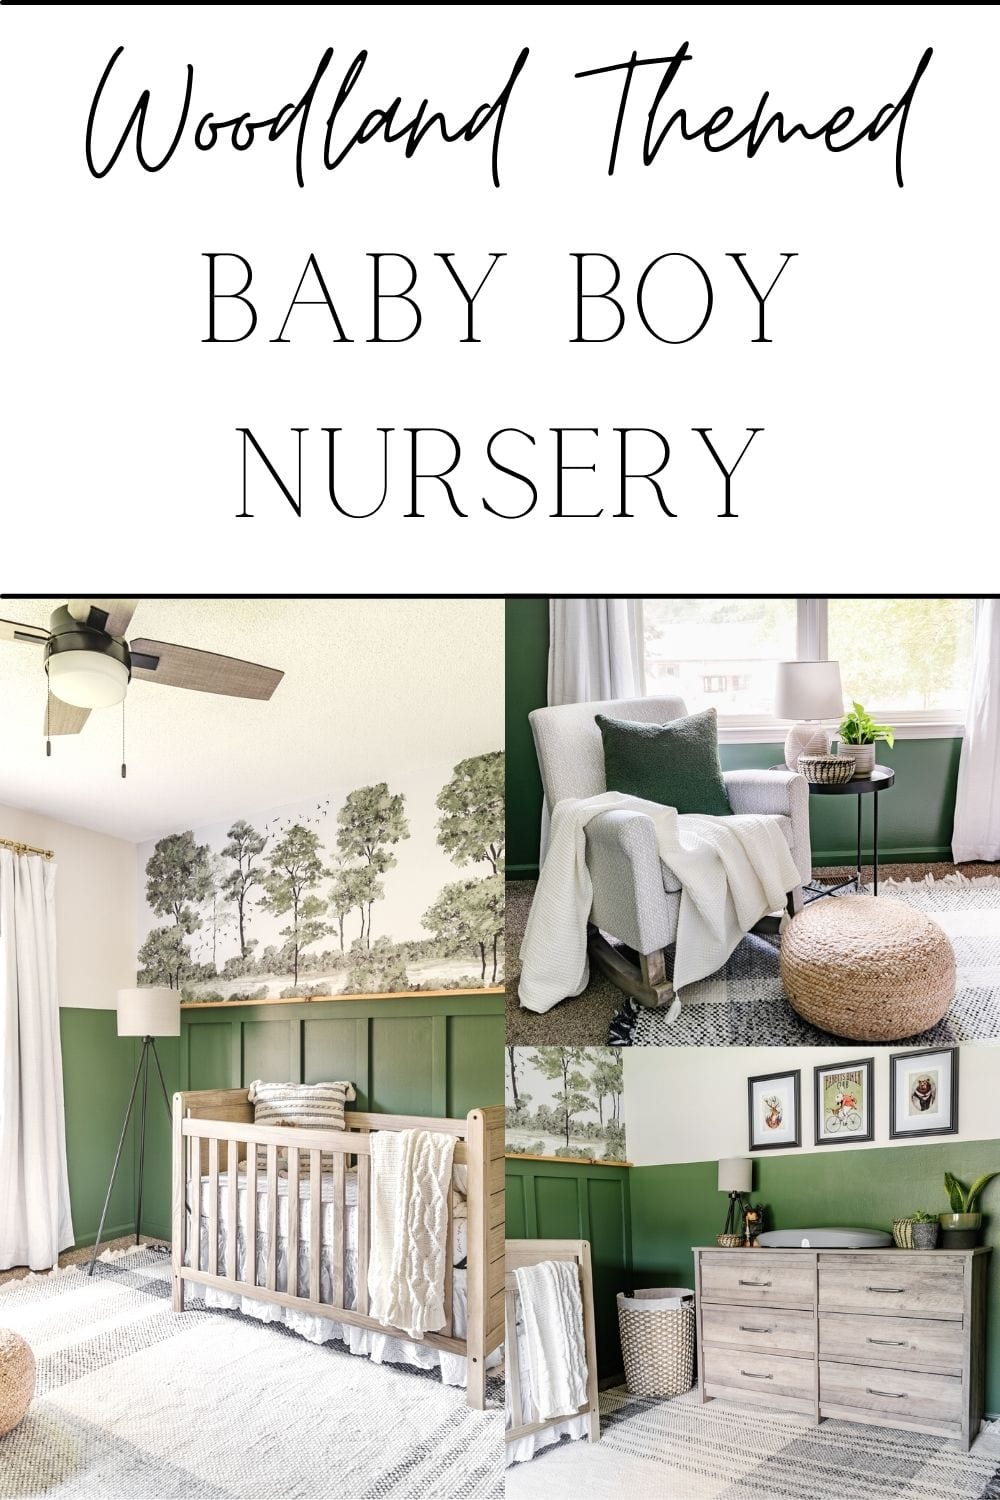 woodland themed baby boy nursery with green paint, forest wall mural, and plaid